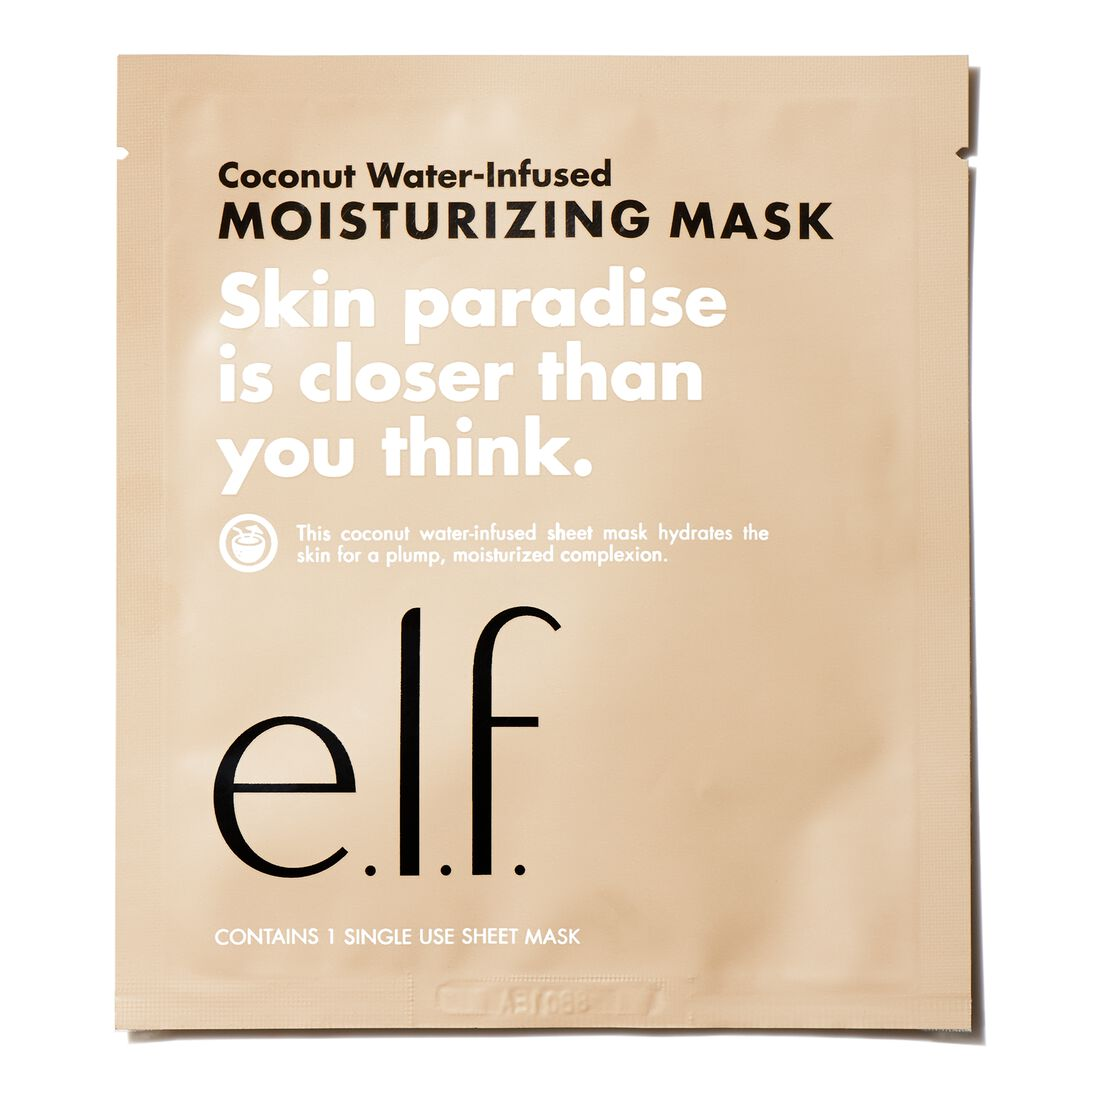 e.l.f. Cosmetics - Coconut Water-Infused Moisturizing Sheet Mask